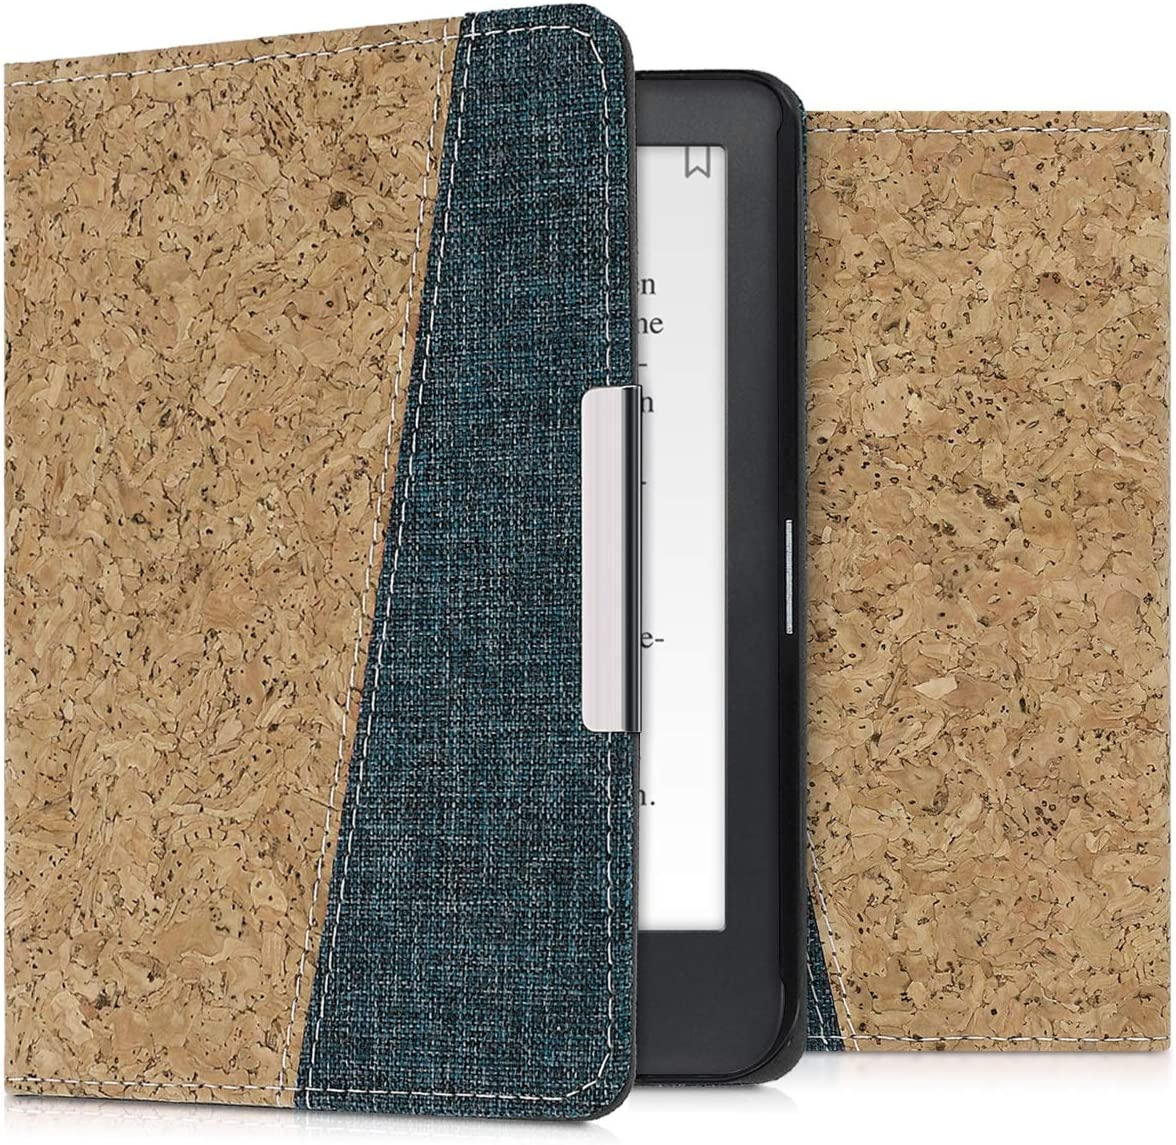 kwmobile Folio Case Compatible with Kobo Clara HD - Cork and Fabric Book Style e-Reader Cover - Light Brown/Blue